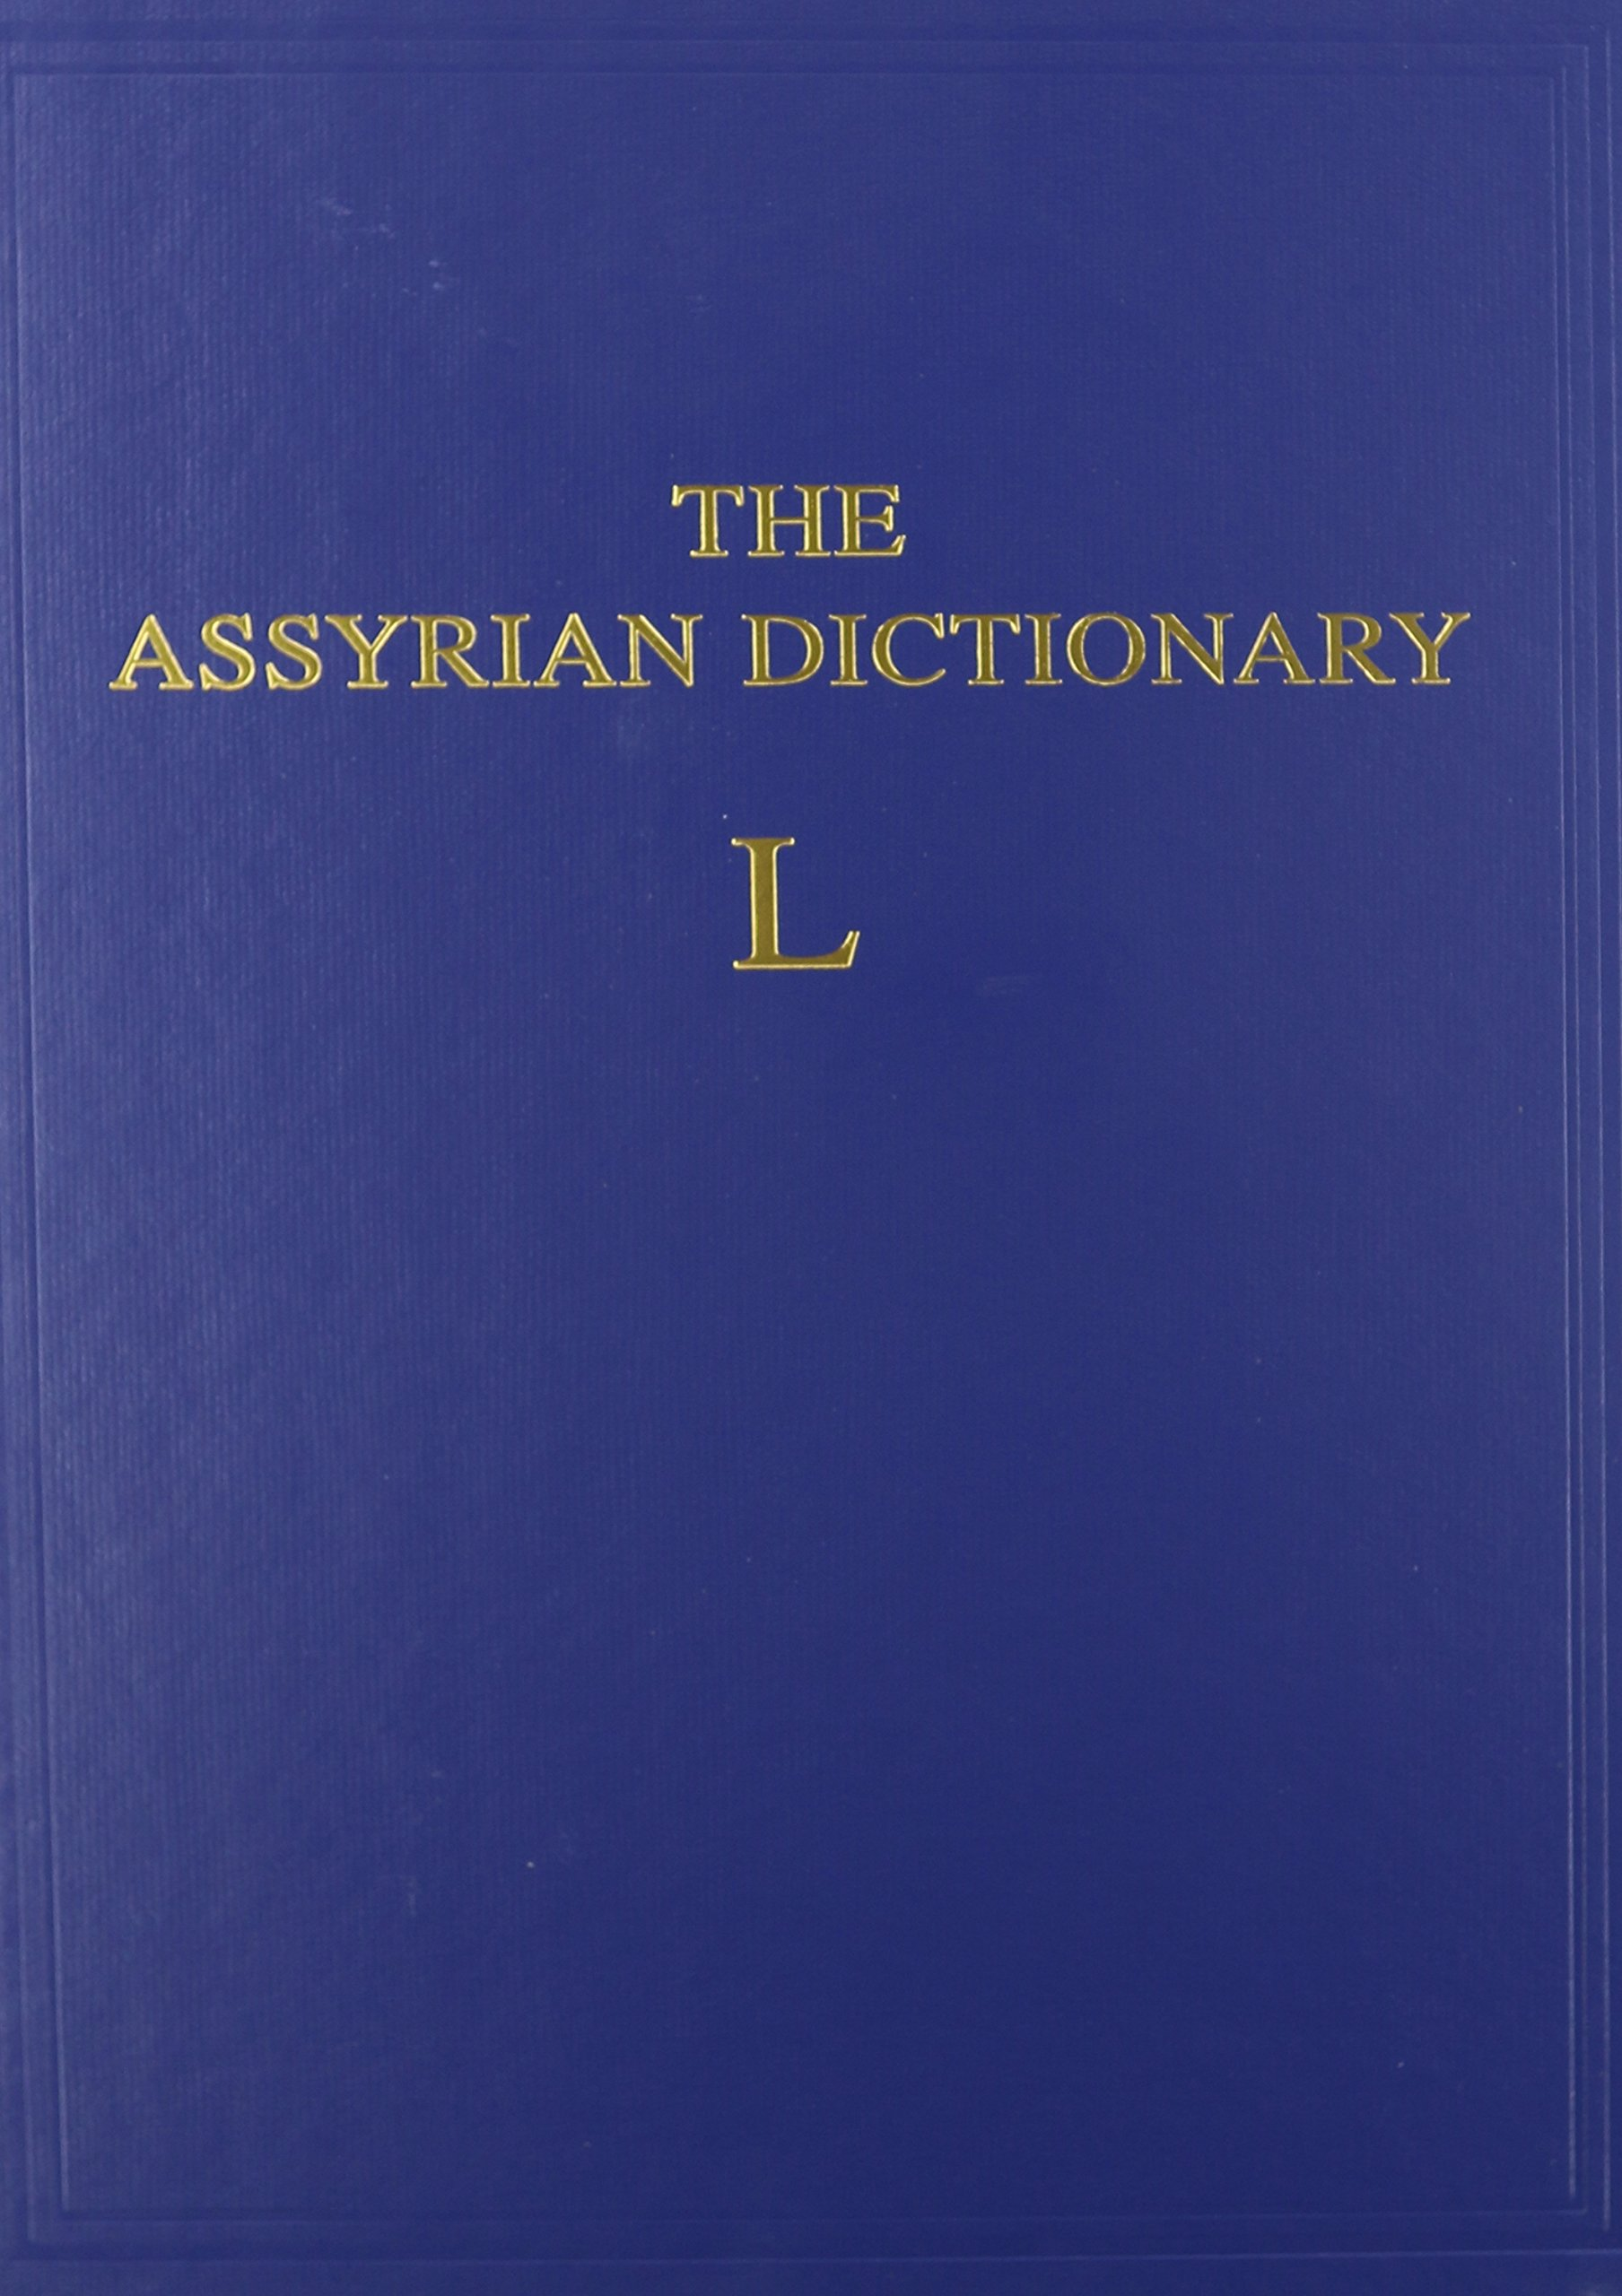 Assyrian Dictionary of the Oriental Institute of the University of Chicago, Volume 9, L